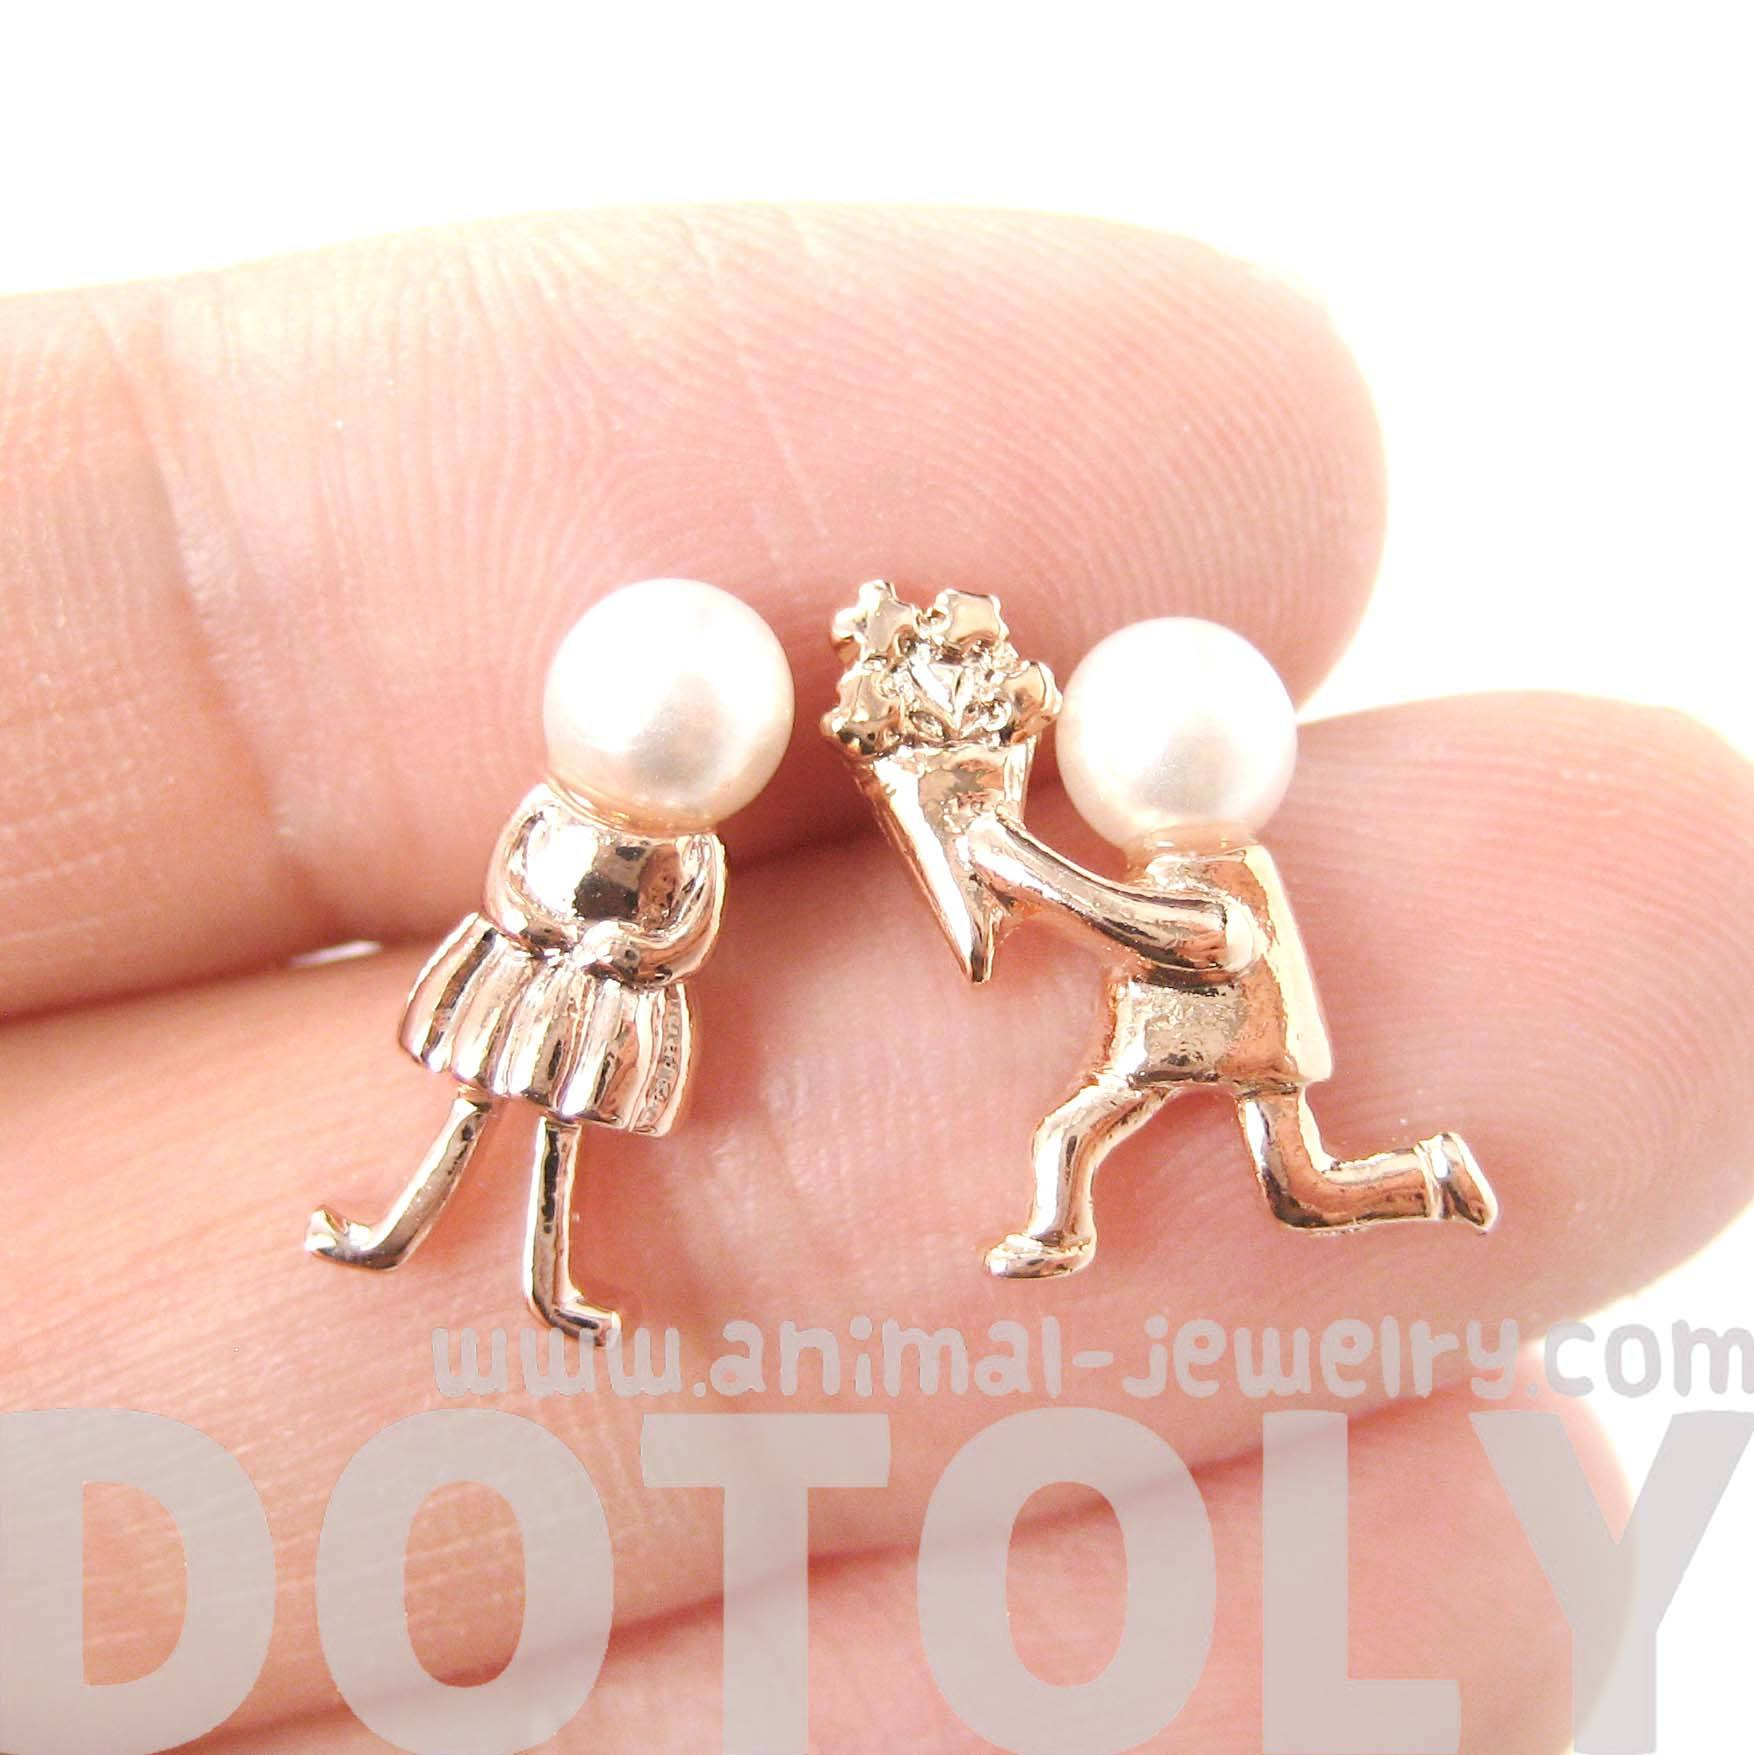 boy-proposing-to-girl-shaped-stud-earrings-in-rose-gold-with-pearls-dotoly